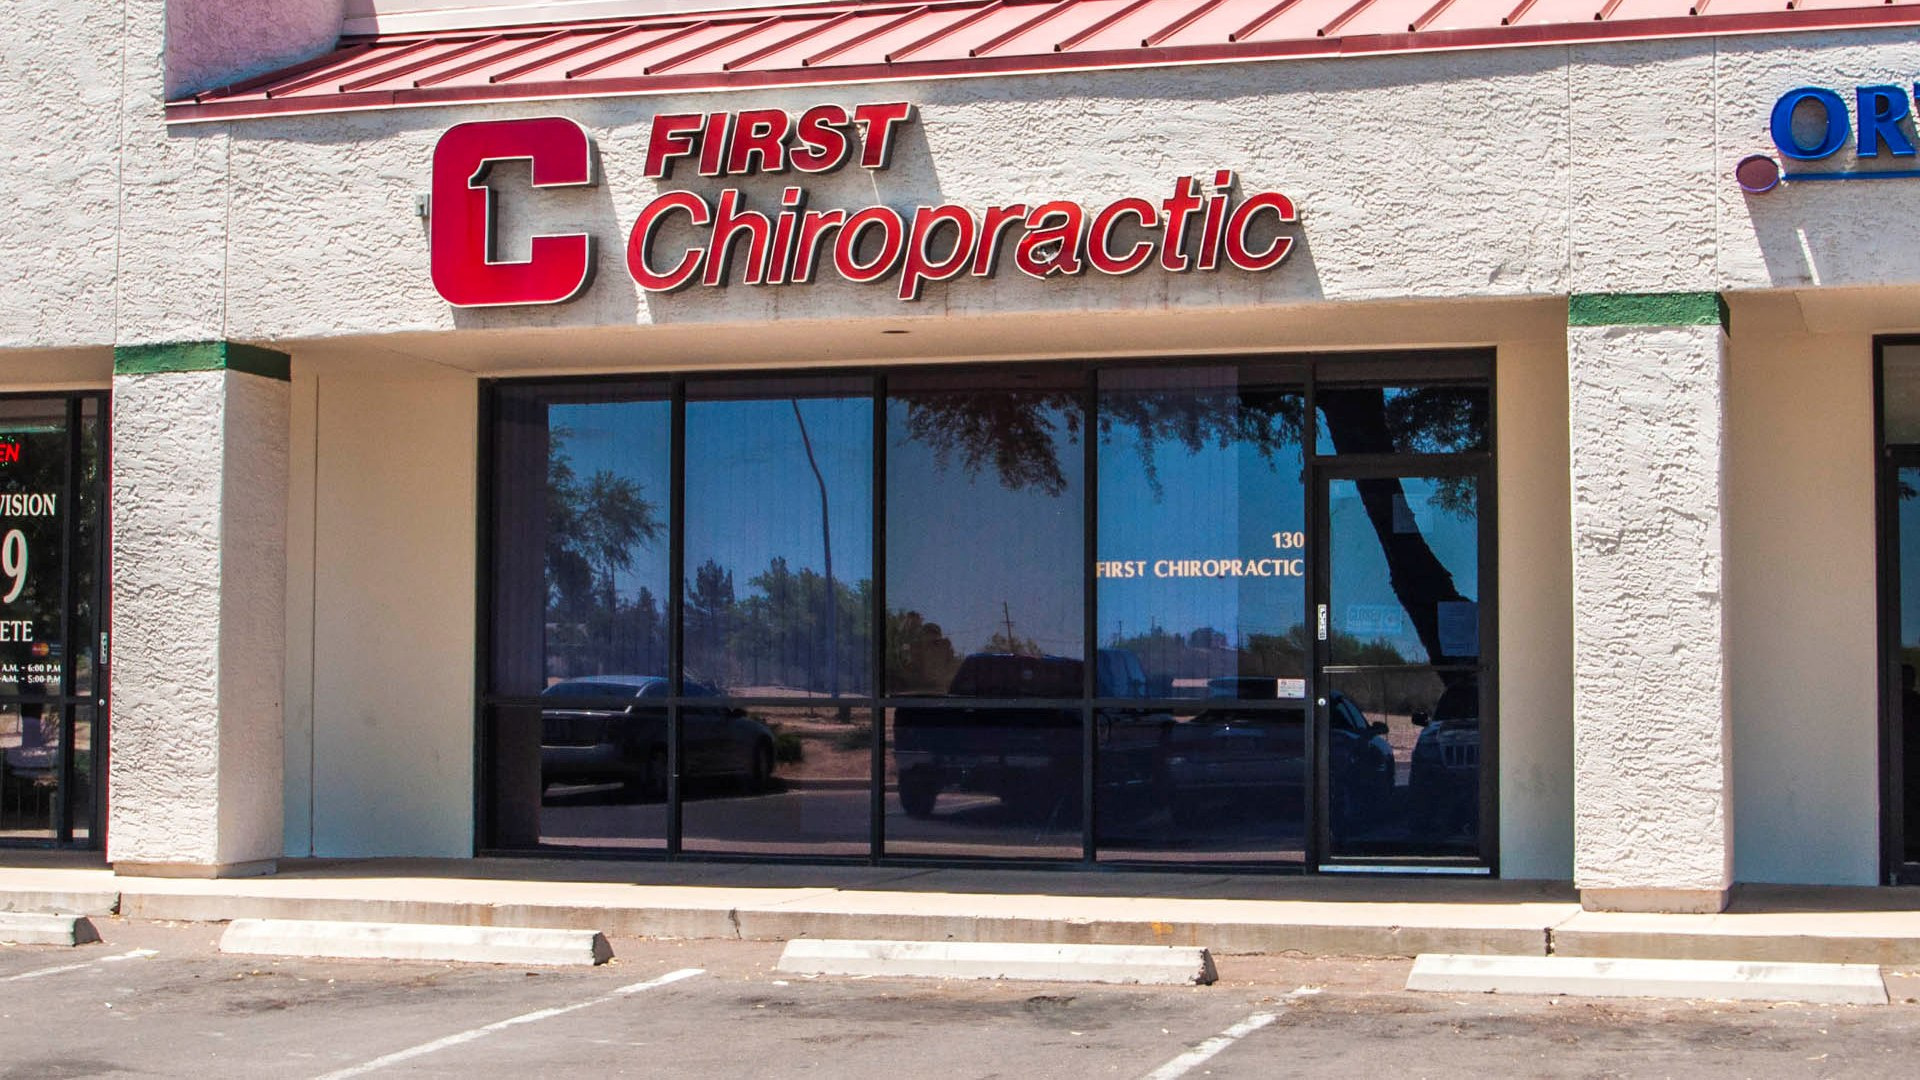 First Chiropractic of Tucson on East Valencia Road